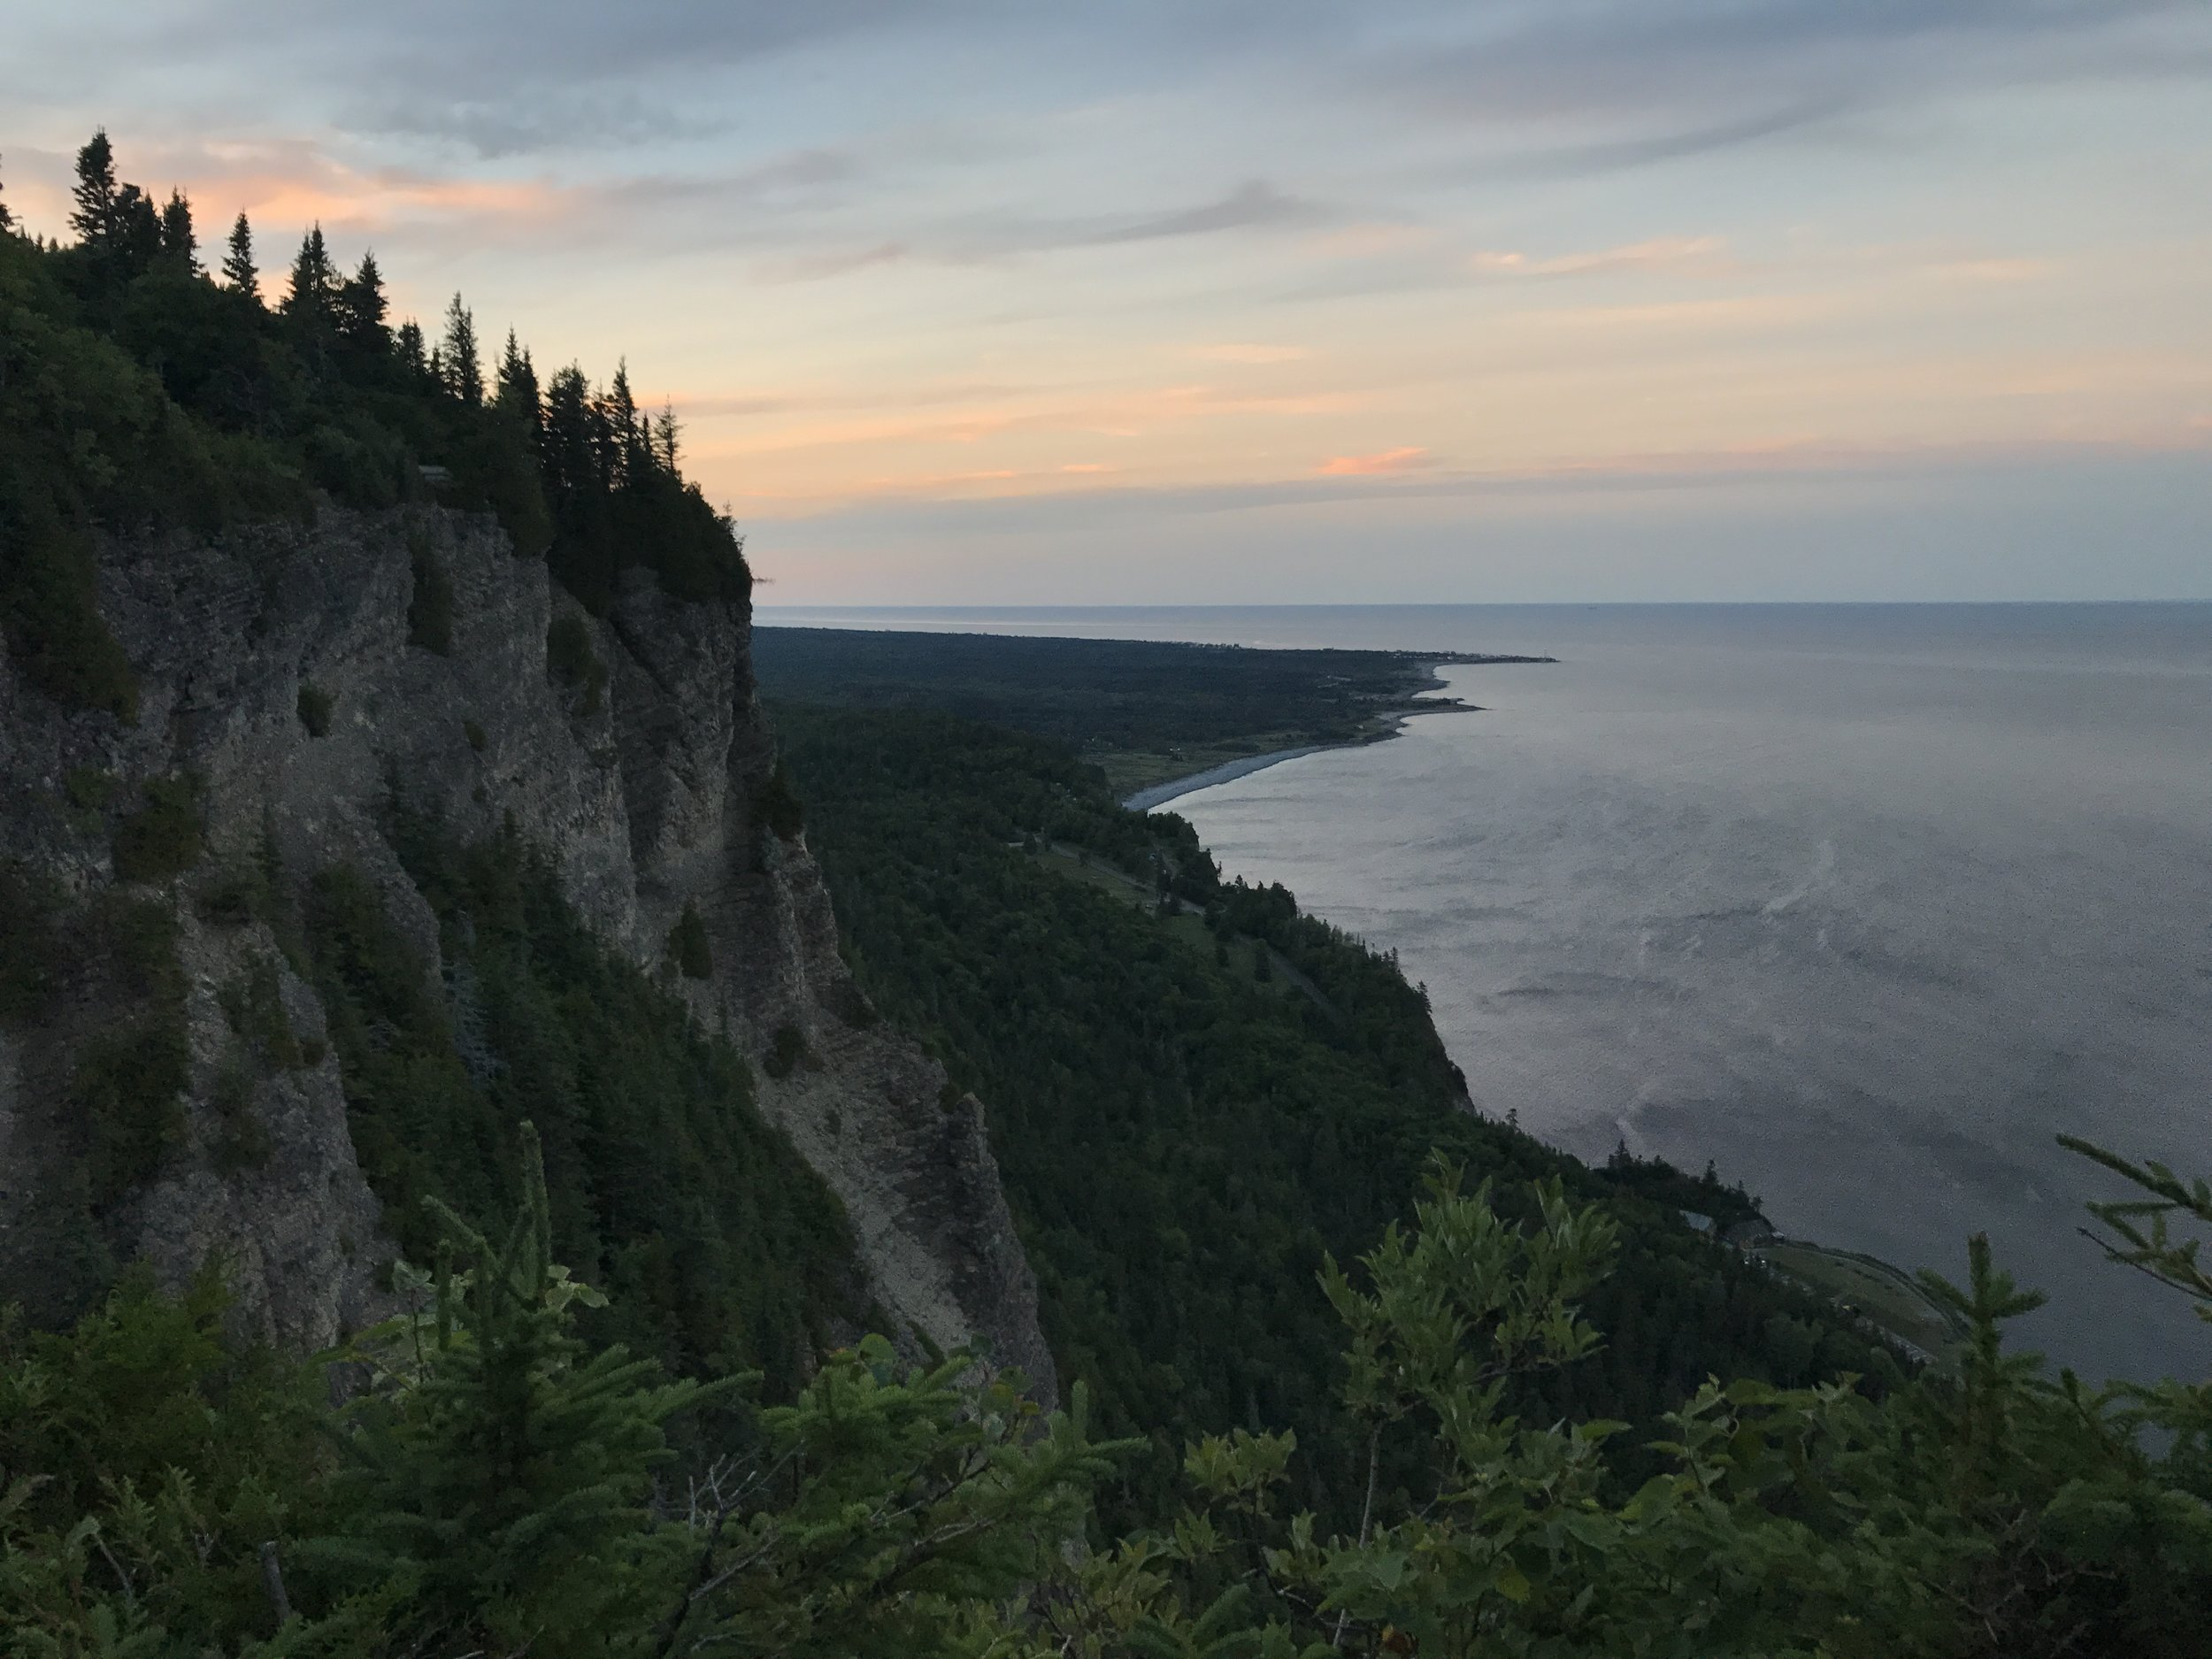 The view on the climb up to the Observation deck, Mont-Saint-Alban, Forillon National Park.